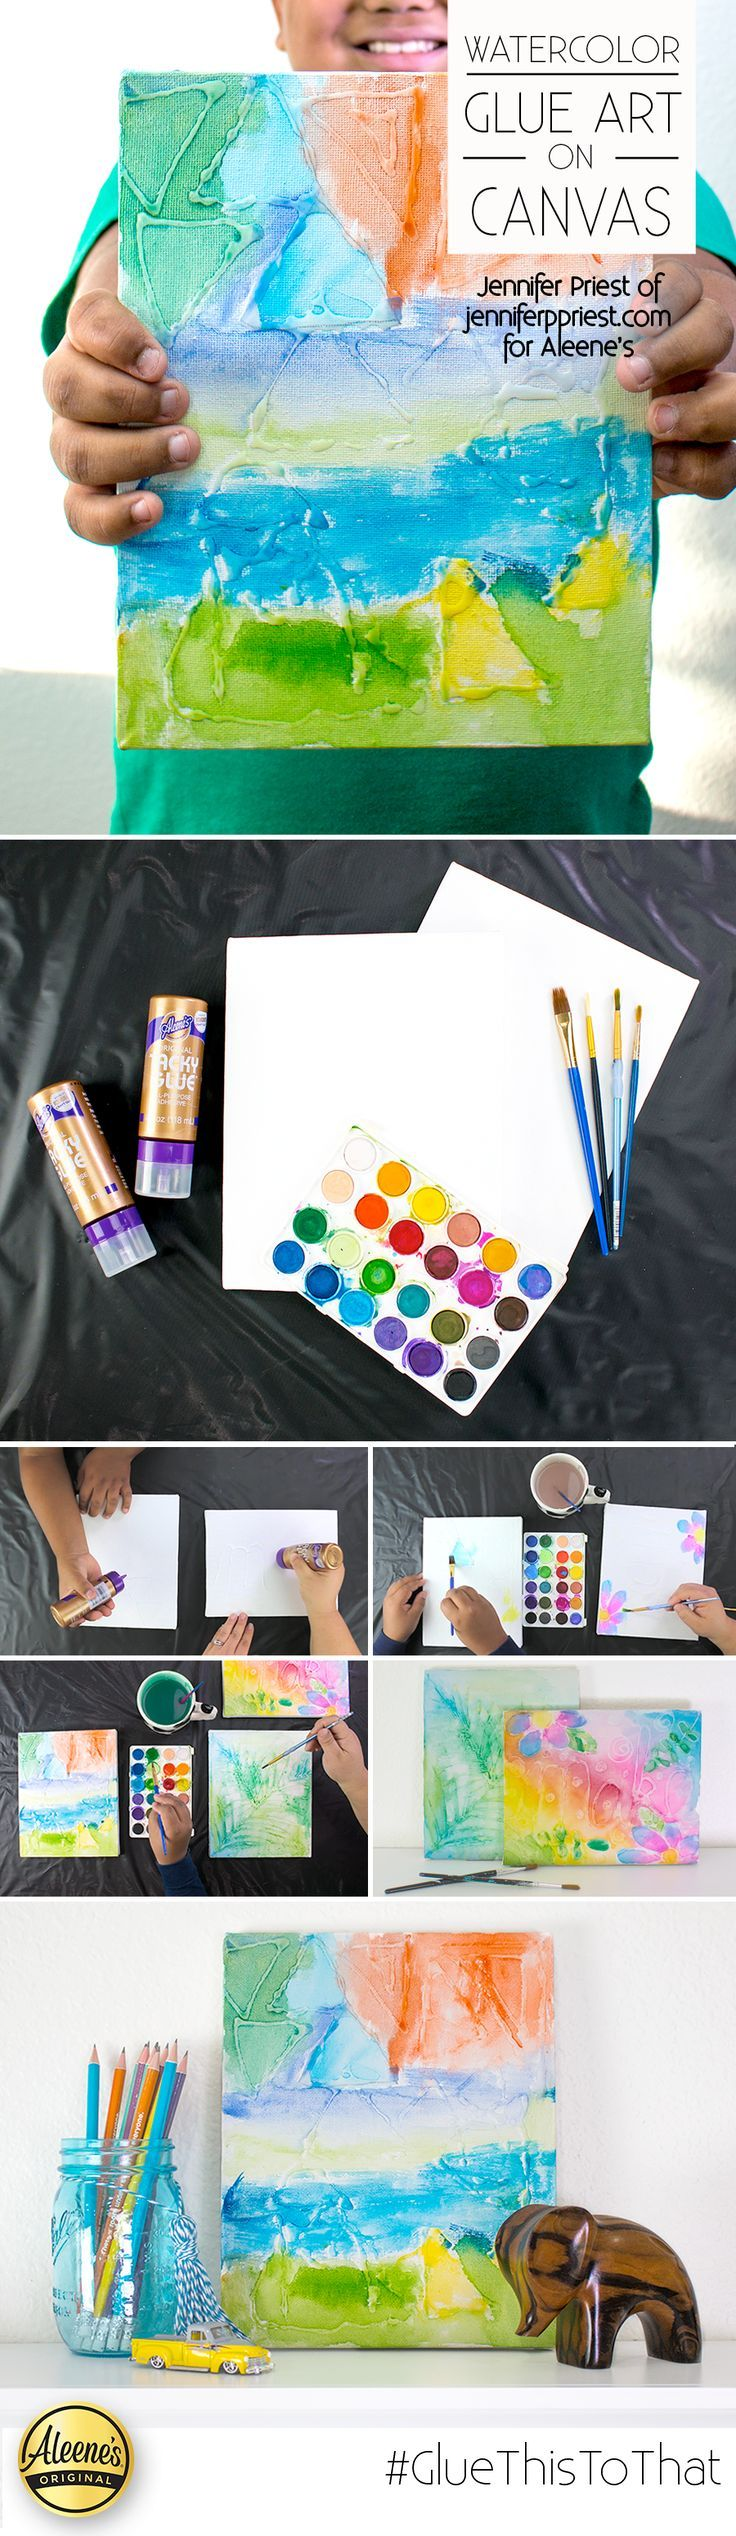 Make watercolor art EASY! Draw patterns on canvas with Aleene's Tacky Glue. Let dry COMPLETELY. Then paint with watercolors! Add lettering, word art, geometric patterns, and botanicals for different looks. Such a fun kids craft PLUS makes a great DIY gallery wall!